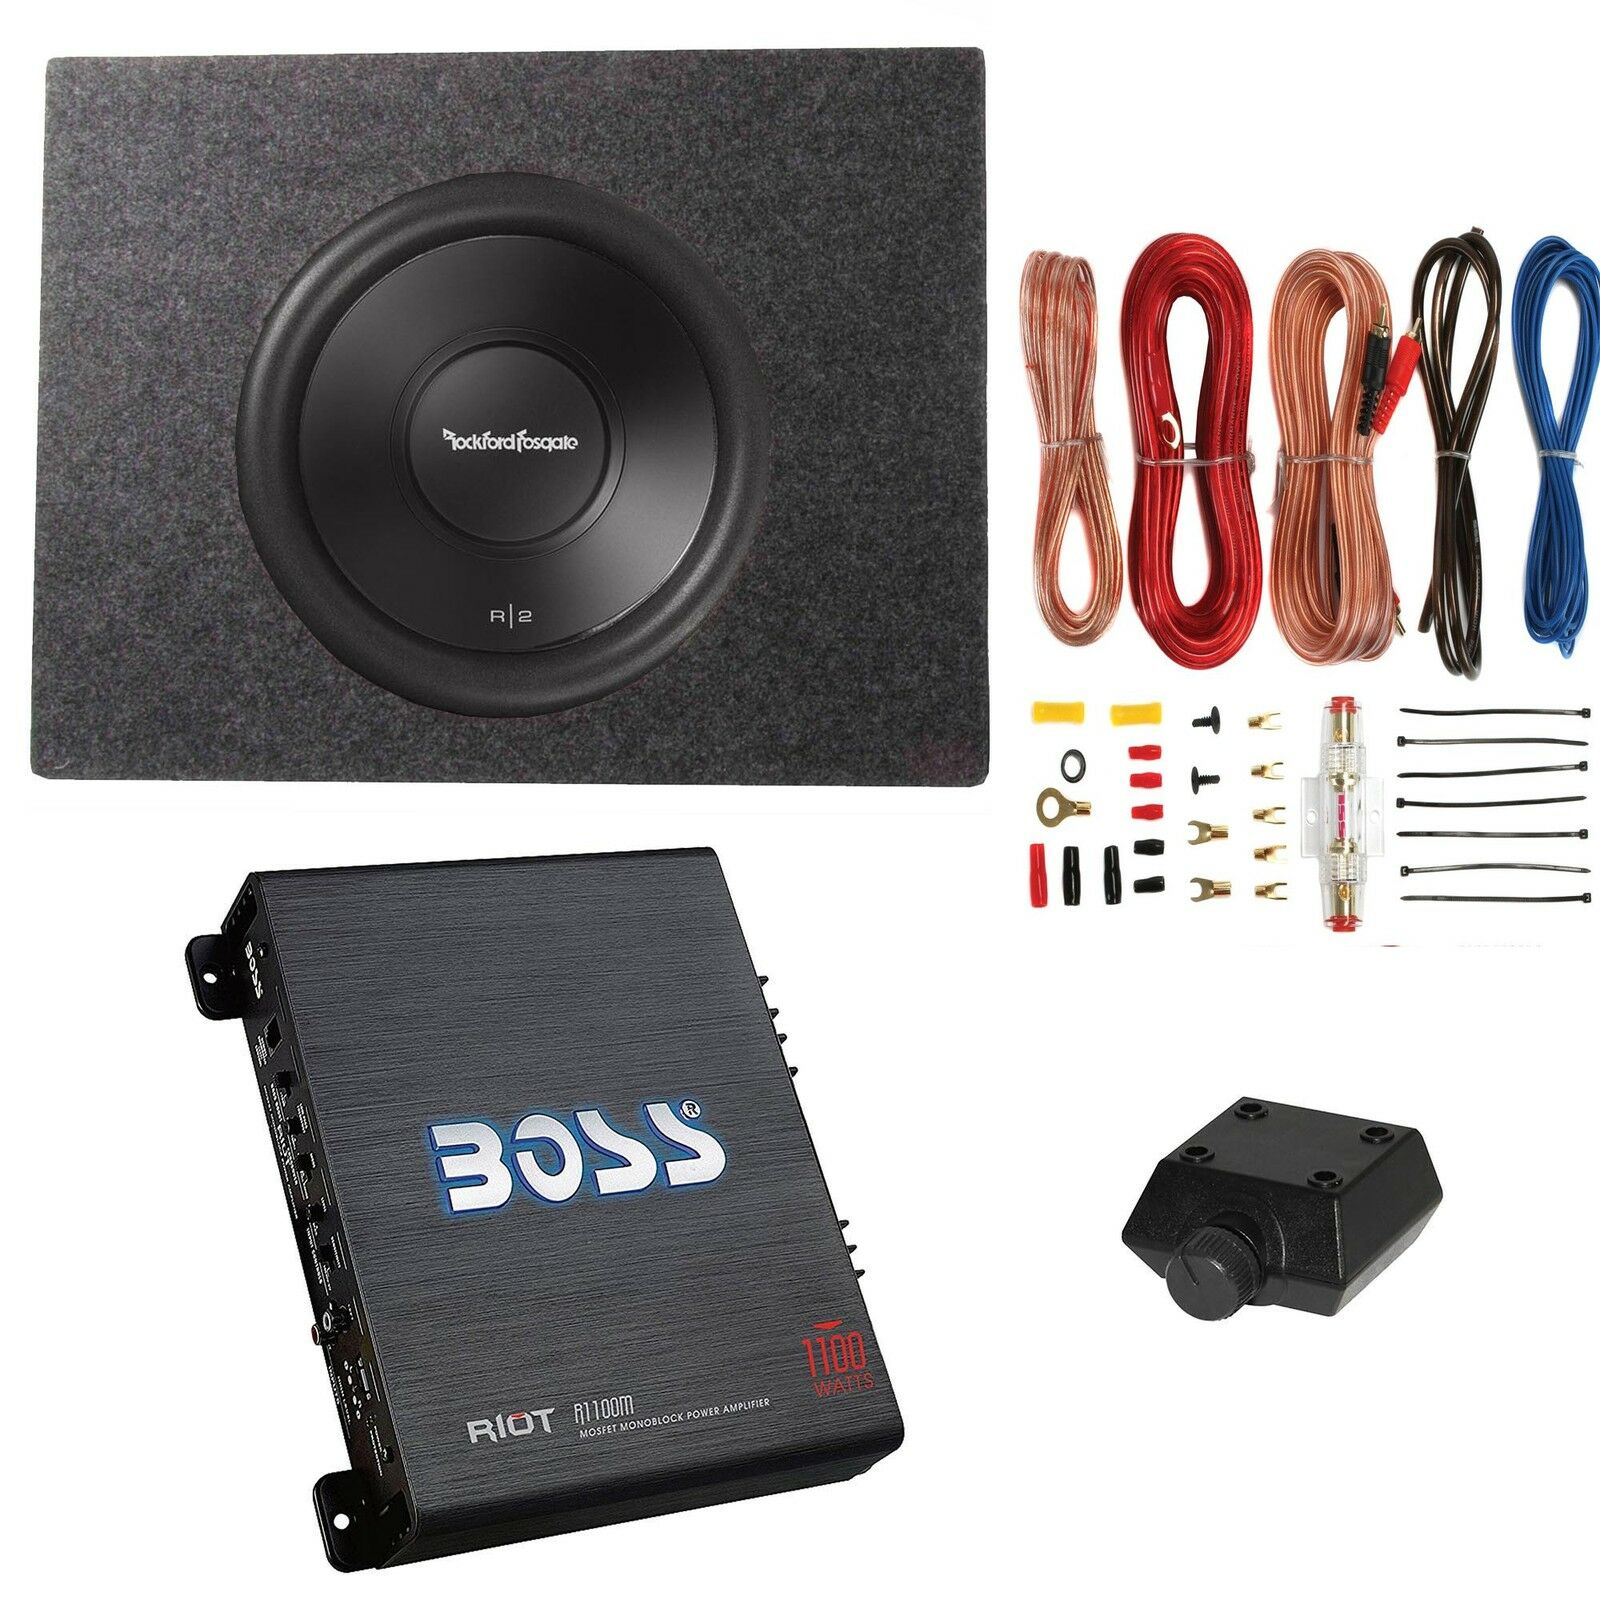 Rockford Fosgate 500w Subwoofer Q Power Truck Enclosure Boss 1100w 10 Inch Sub Wiring Diagram Norton Secured Powered By Verisign